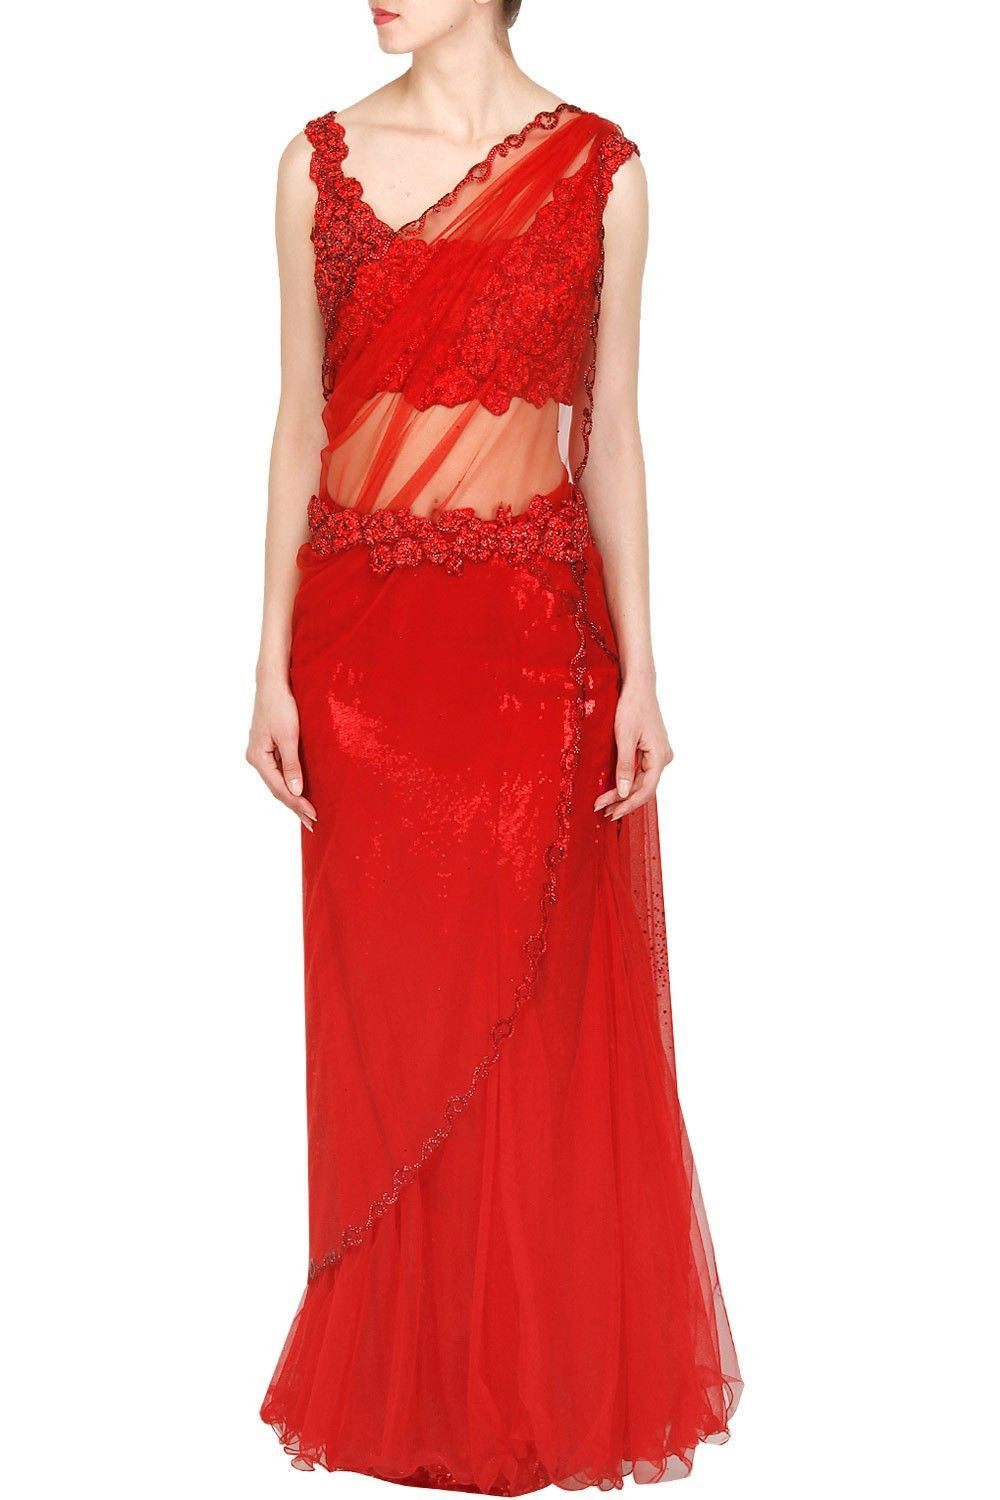 Red color saree gown | Red color, Saree and Gowns